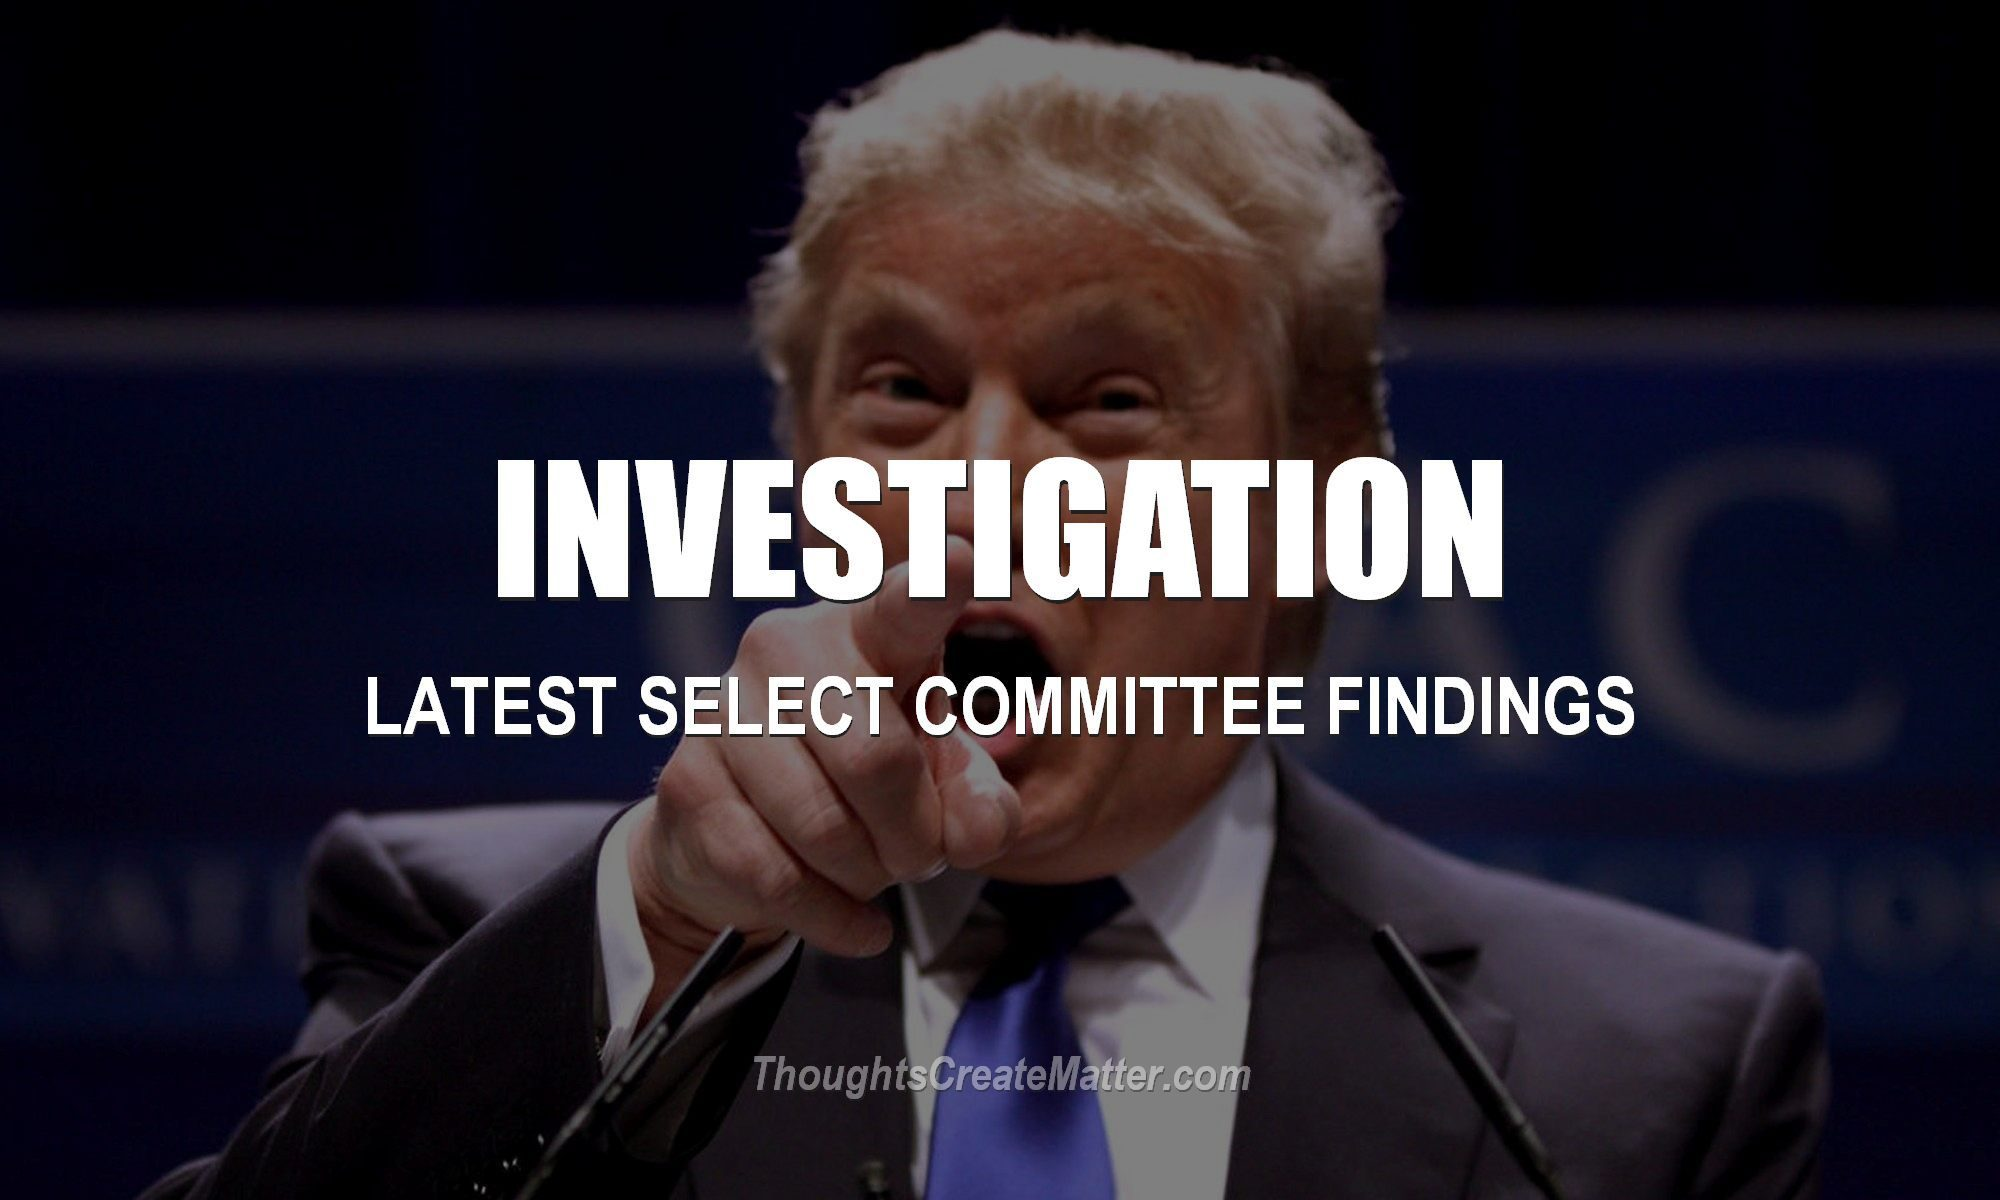 Select committee investigation findings of Trump. Will Trump be indicted, arrested and sent to prison? Latest current updates and article.